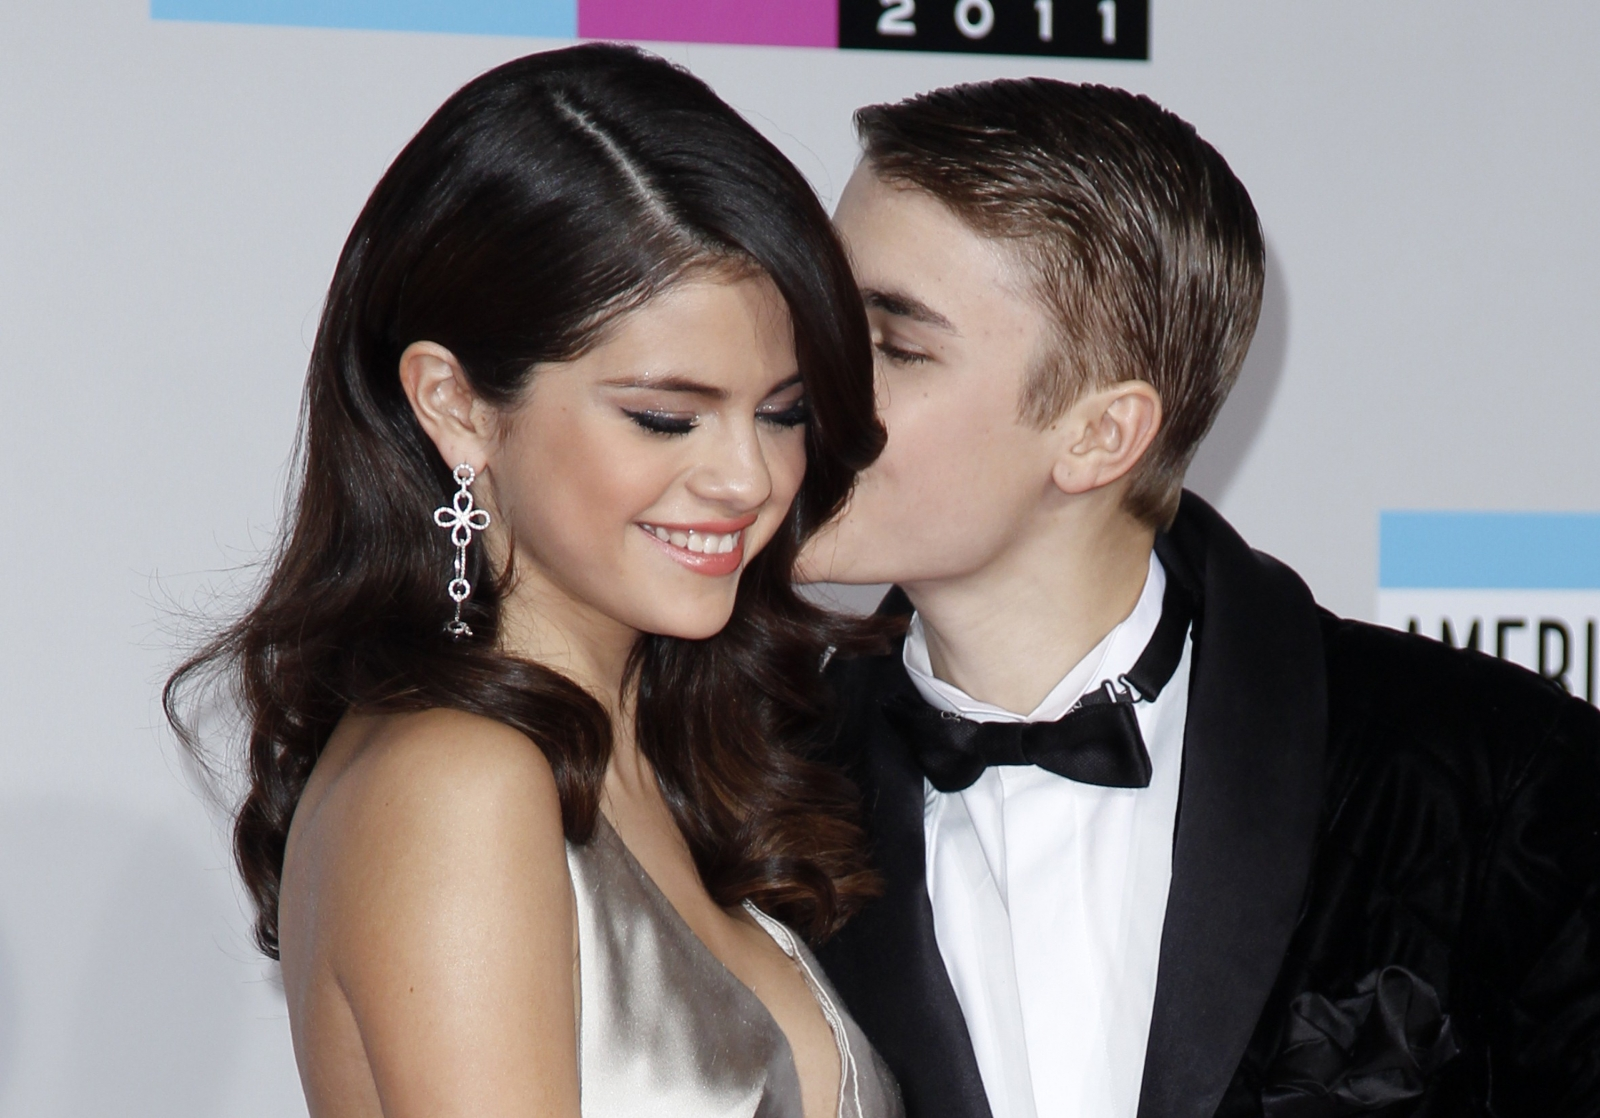 is Justin Bieber nog steeds dating Selena Gomez 2012 dating website voor jonge singles